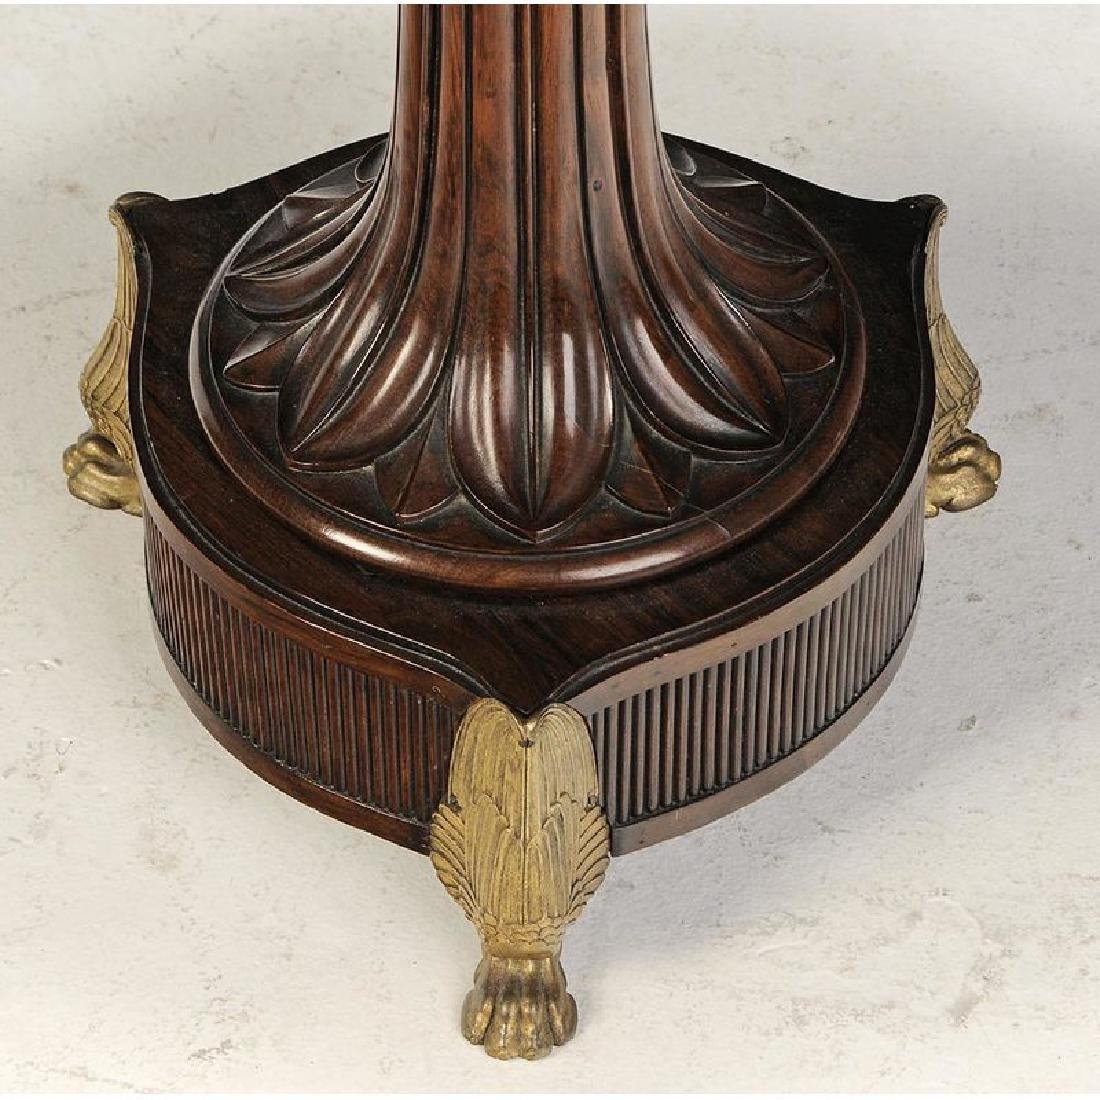 Classical Rosewood and Gilt Pedestal Table - 4